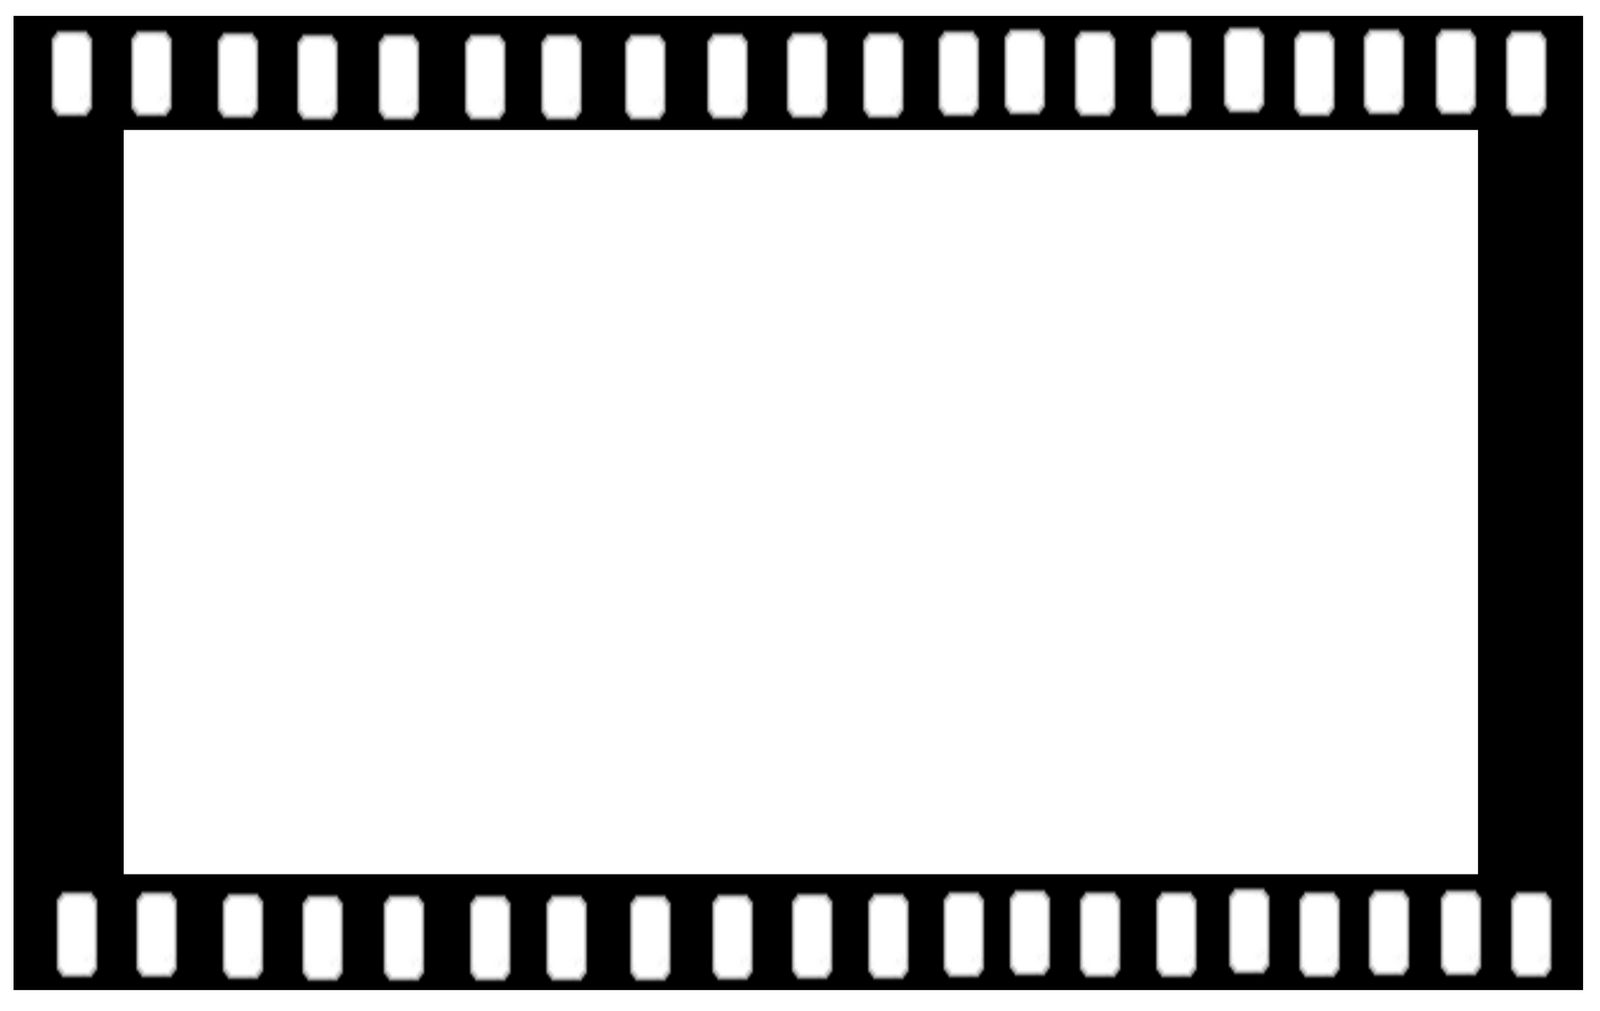 Grunge film strip png. Free clipart download clip